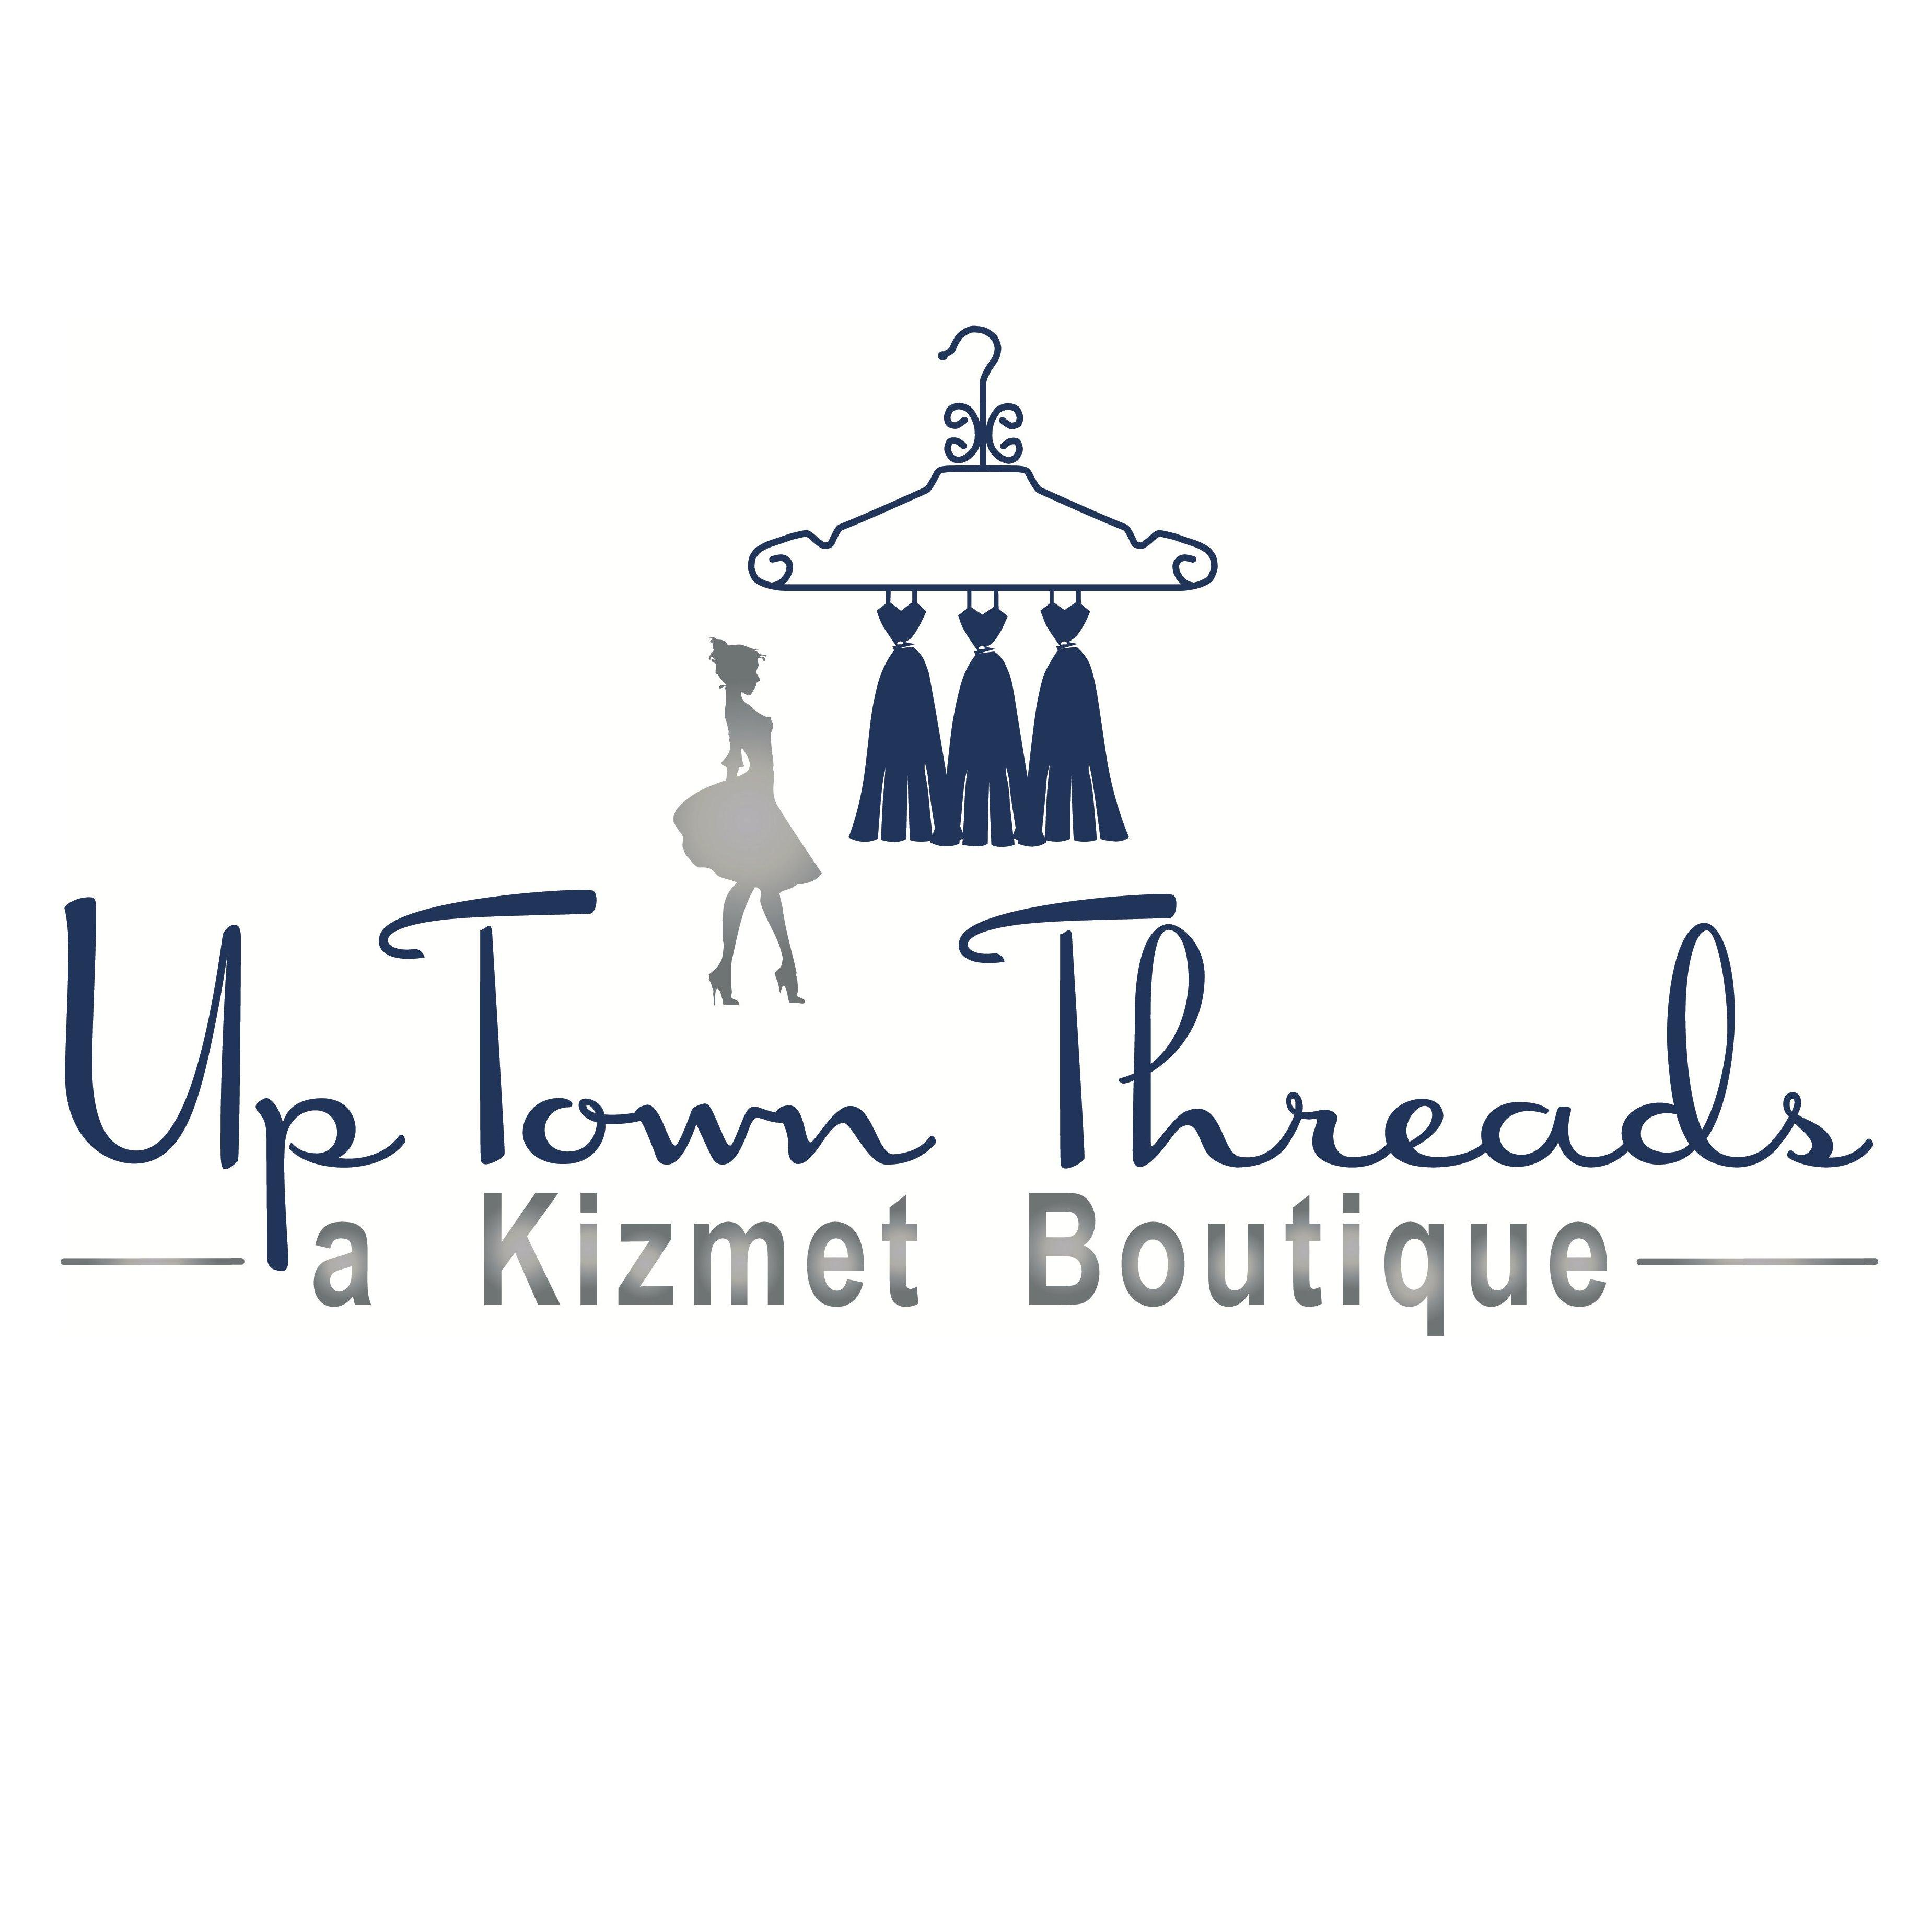 Up Town Threads a Kizmet Boutique image 9